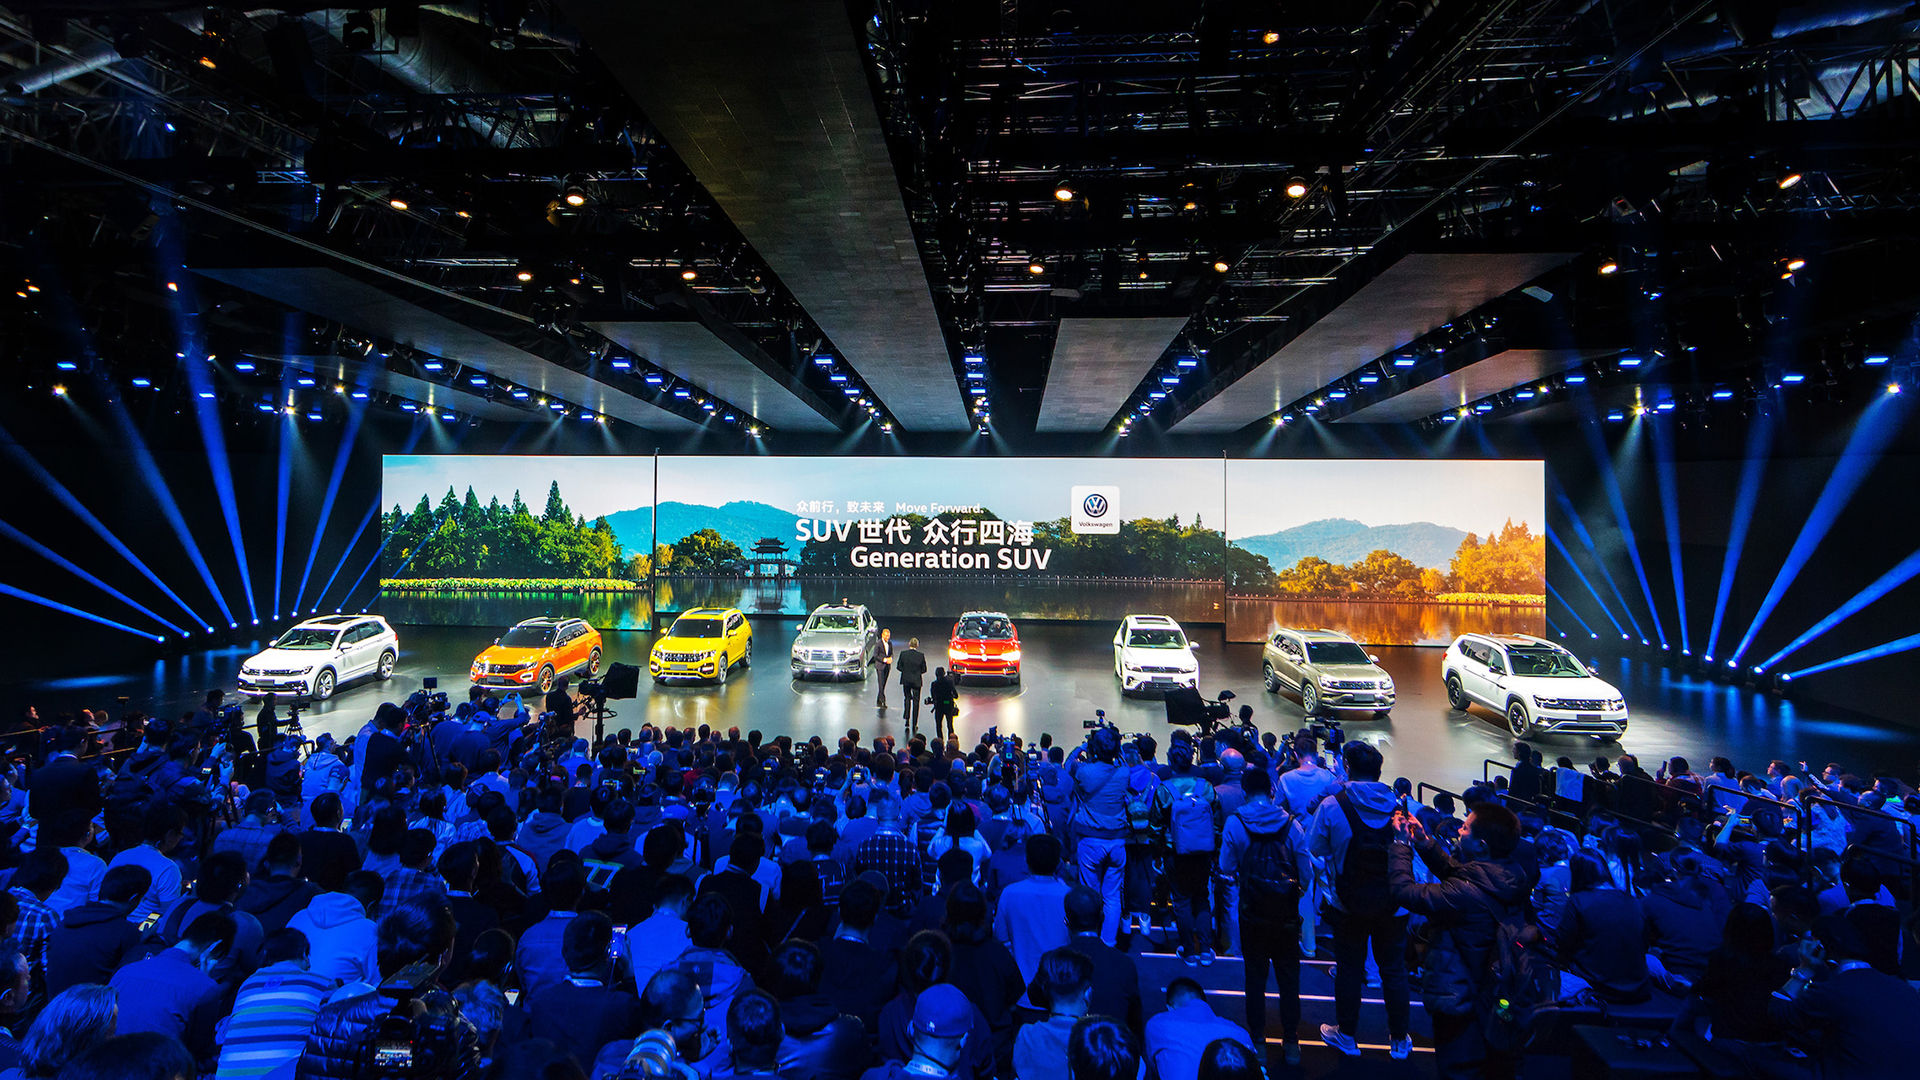 Eight new Volkswagen SUVs stand on stage in front of a large LED screen.